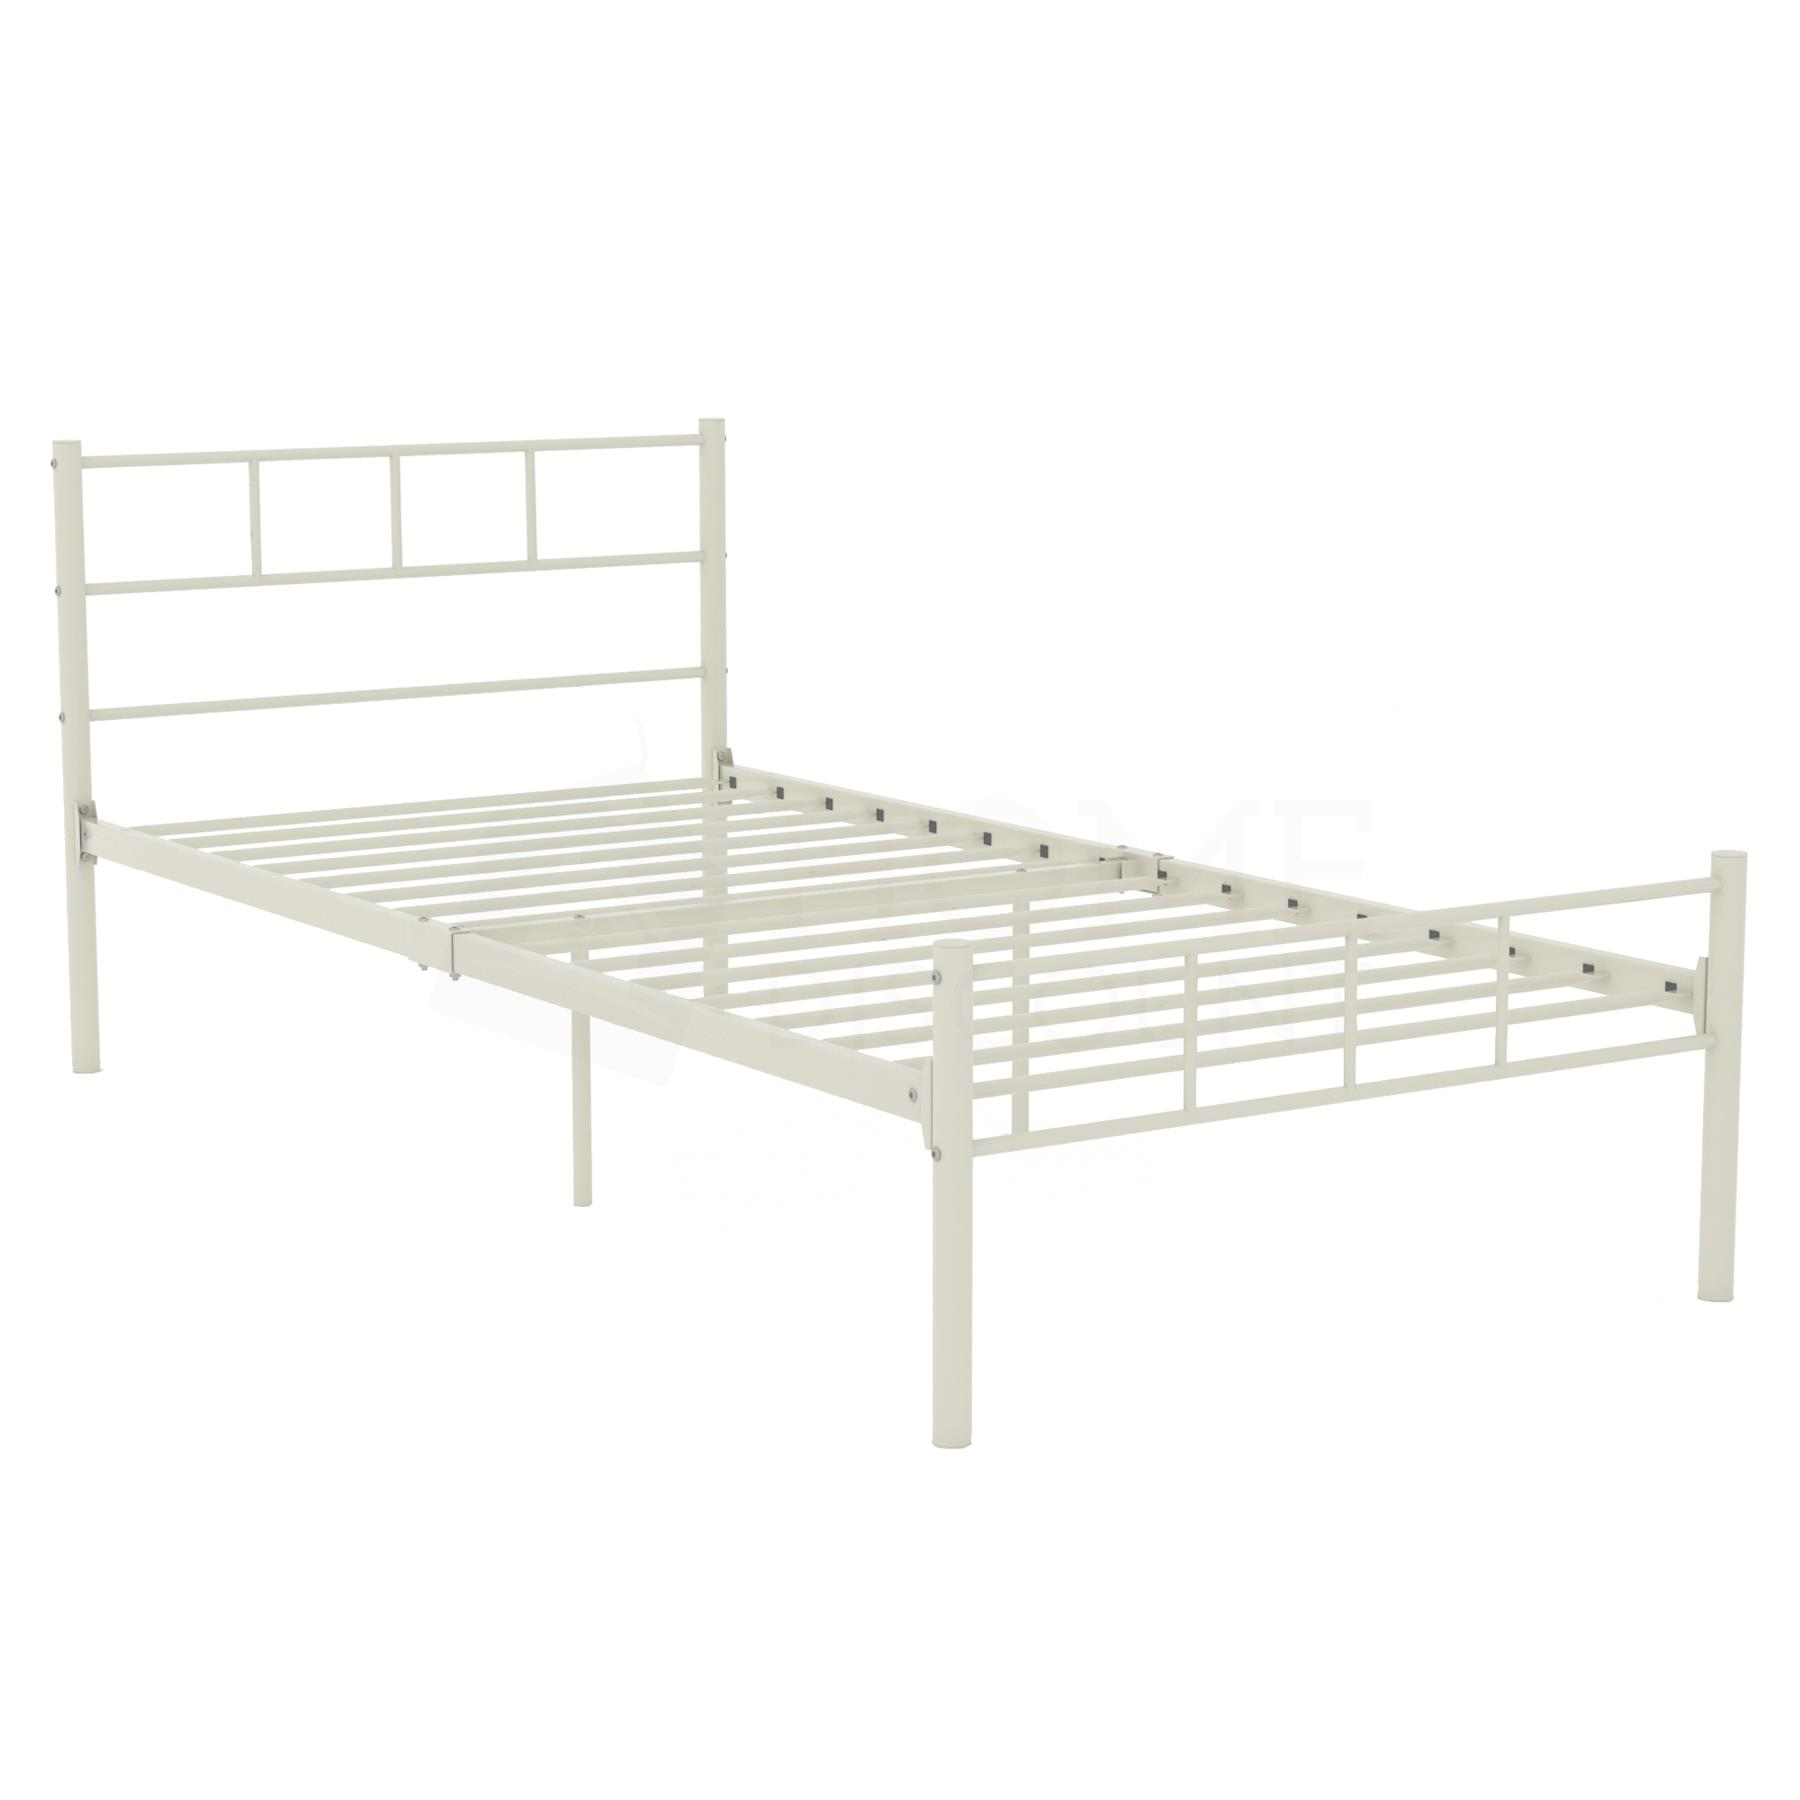 Dorset-Double-King-Size-Single-Bed-Metal-Steel-Frame-4ft6-5ft-Bedroom-Furniture thumbnail 26